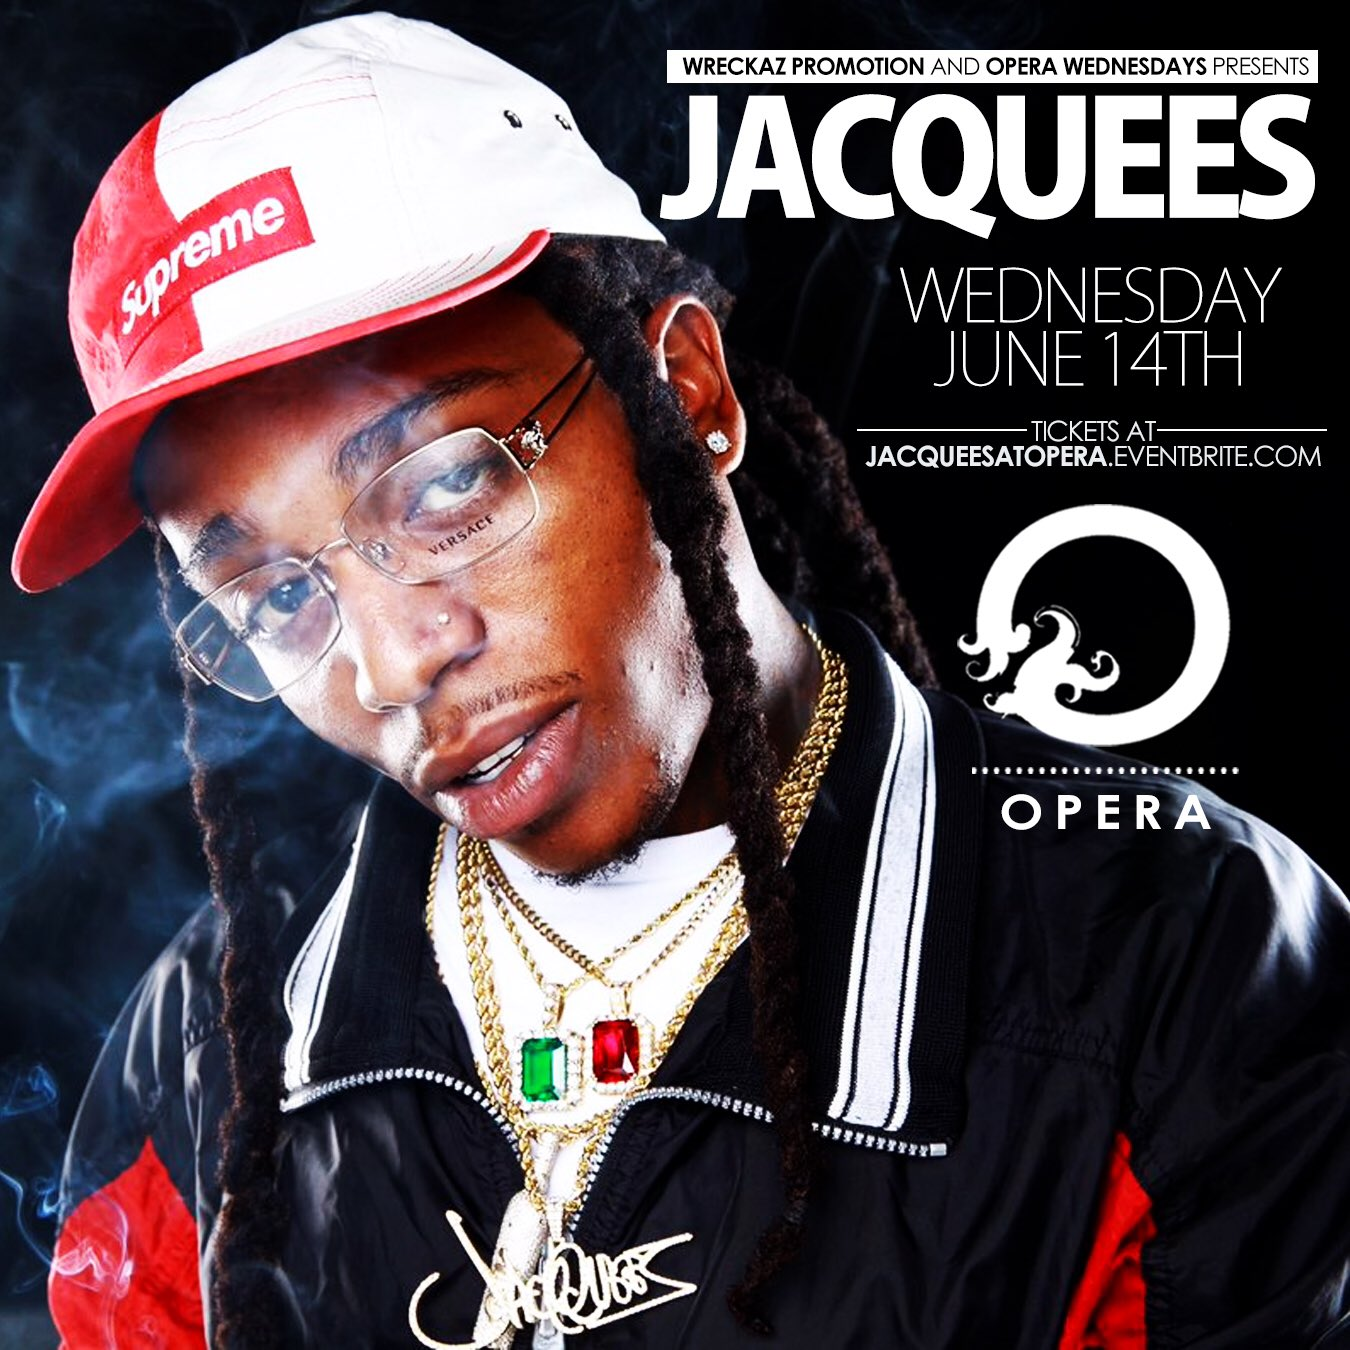 Atlanta come party with me this Wednesday!!! https://t.co/PCqs0EnVPL